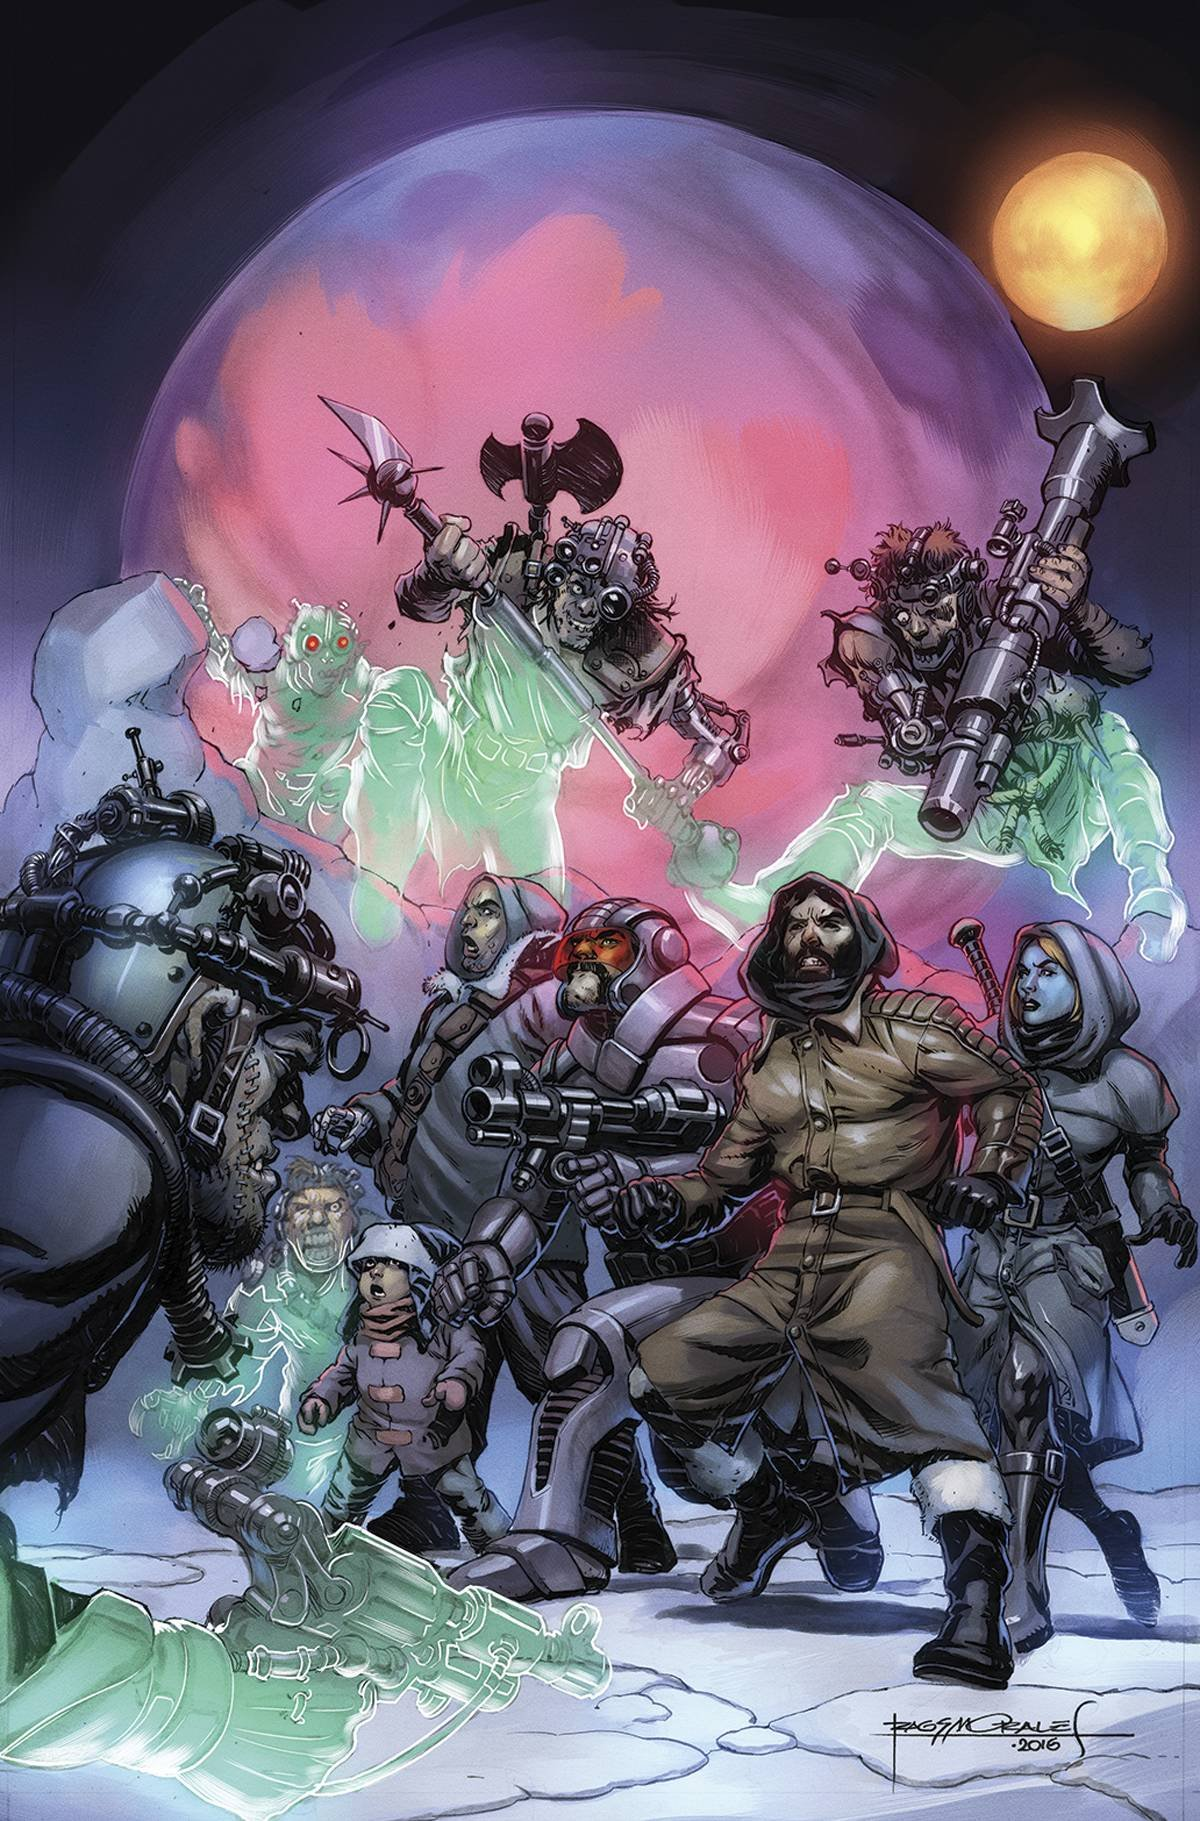 Download AMORY WARS GOOD APOLLO #5 (OF 12) (MR) Release Date 8/2/17 PDF